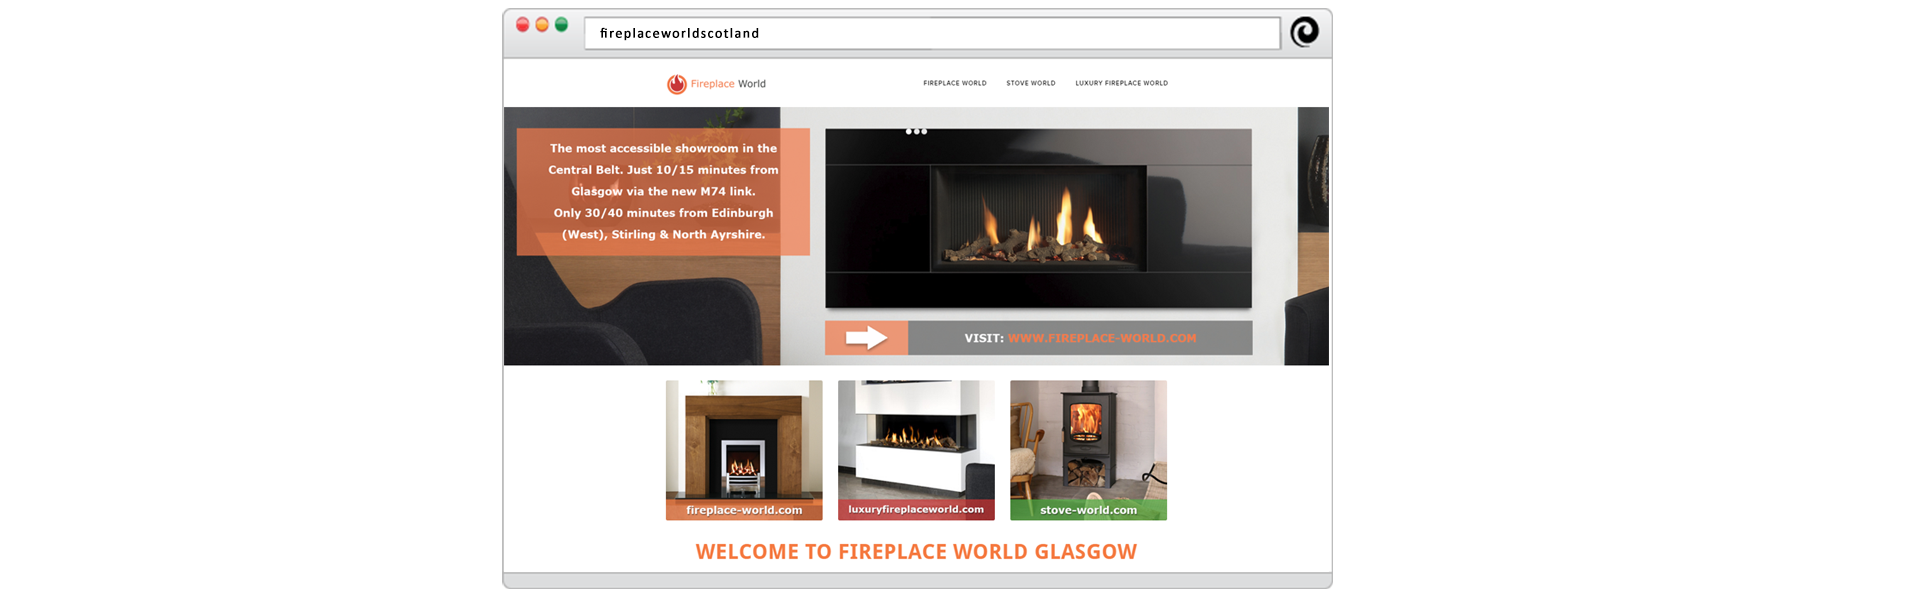 YPod Media Web Design Glasgow Scotland Slider 3